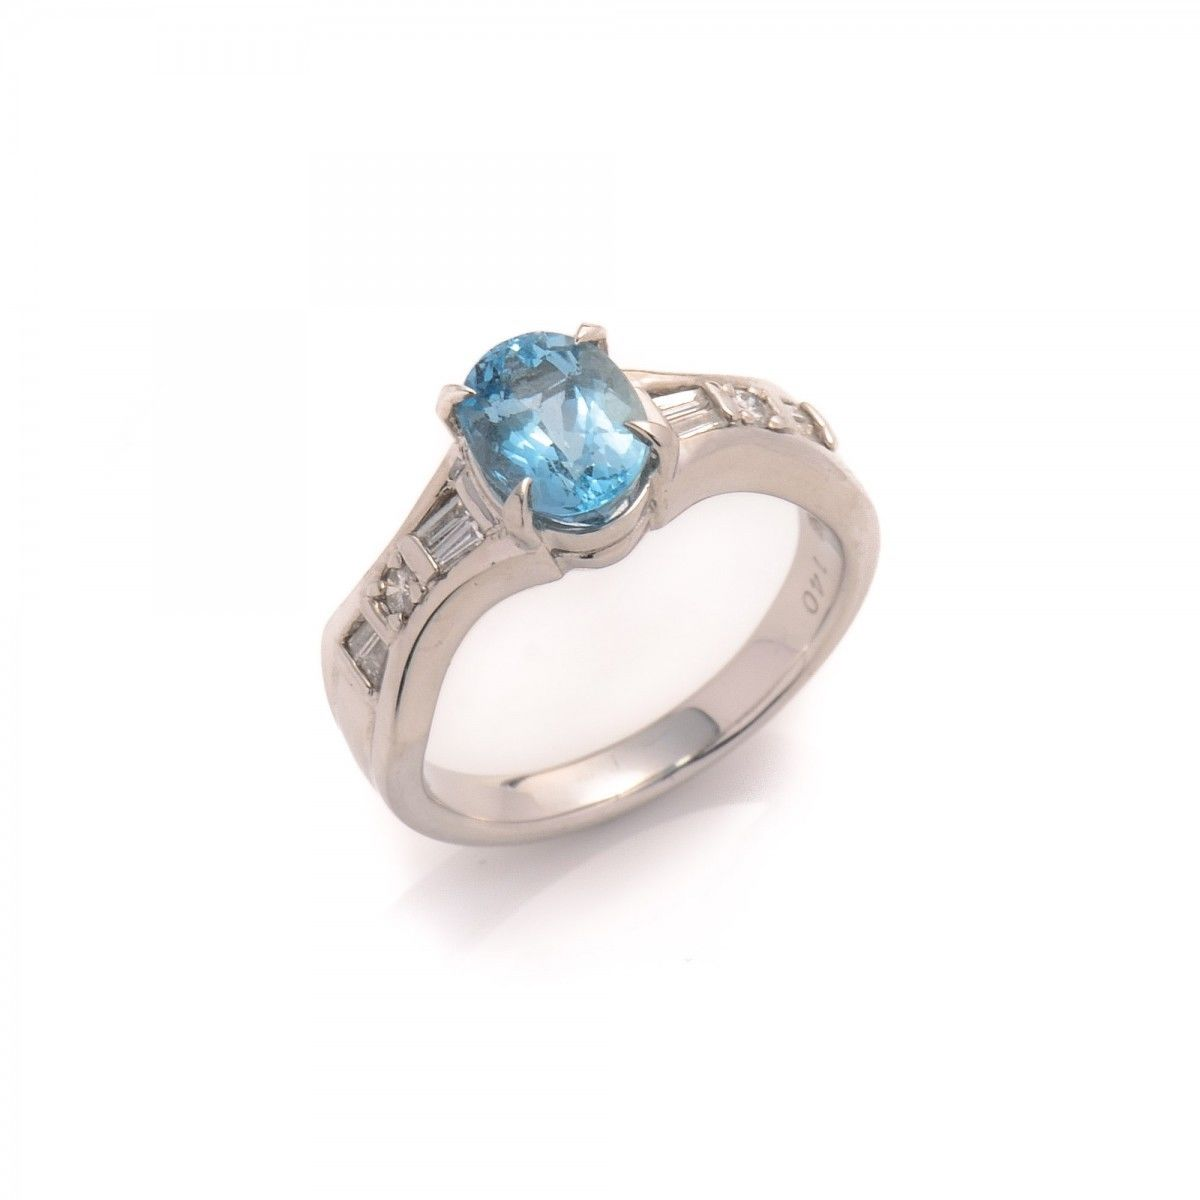 diamond star vendor cf ring in and type manufactured rings products sapphire jewellery oliver platinum birks